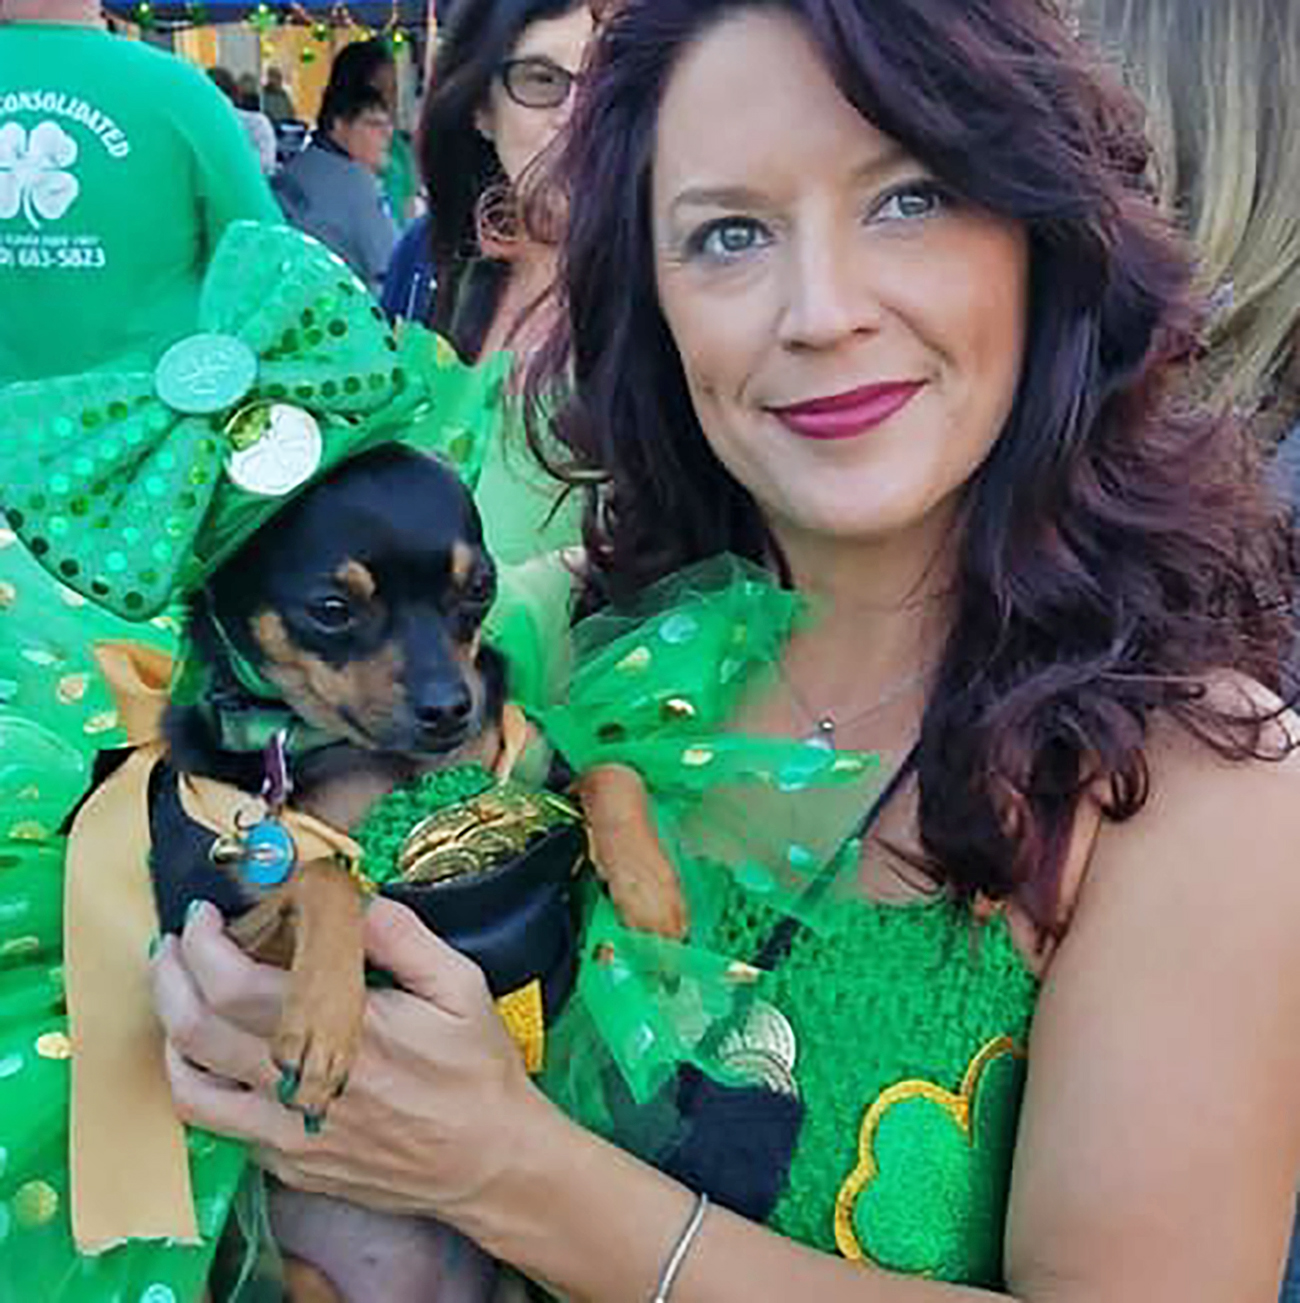 Presley the dog and owner Rebecca in St. Patrick's Day outfits